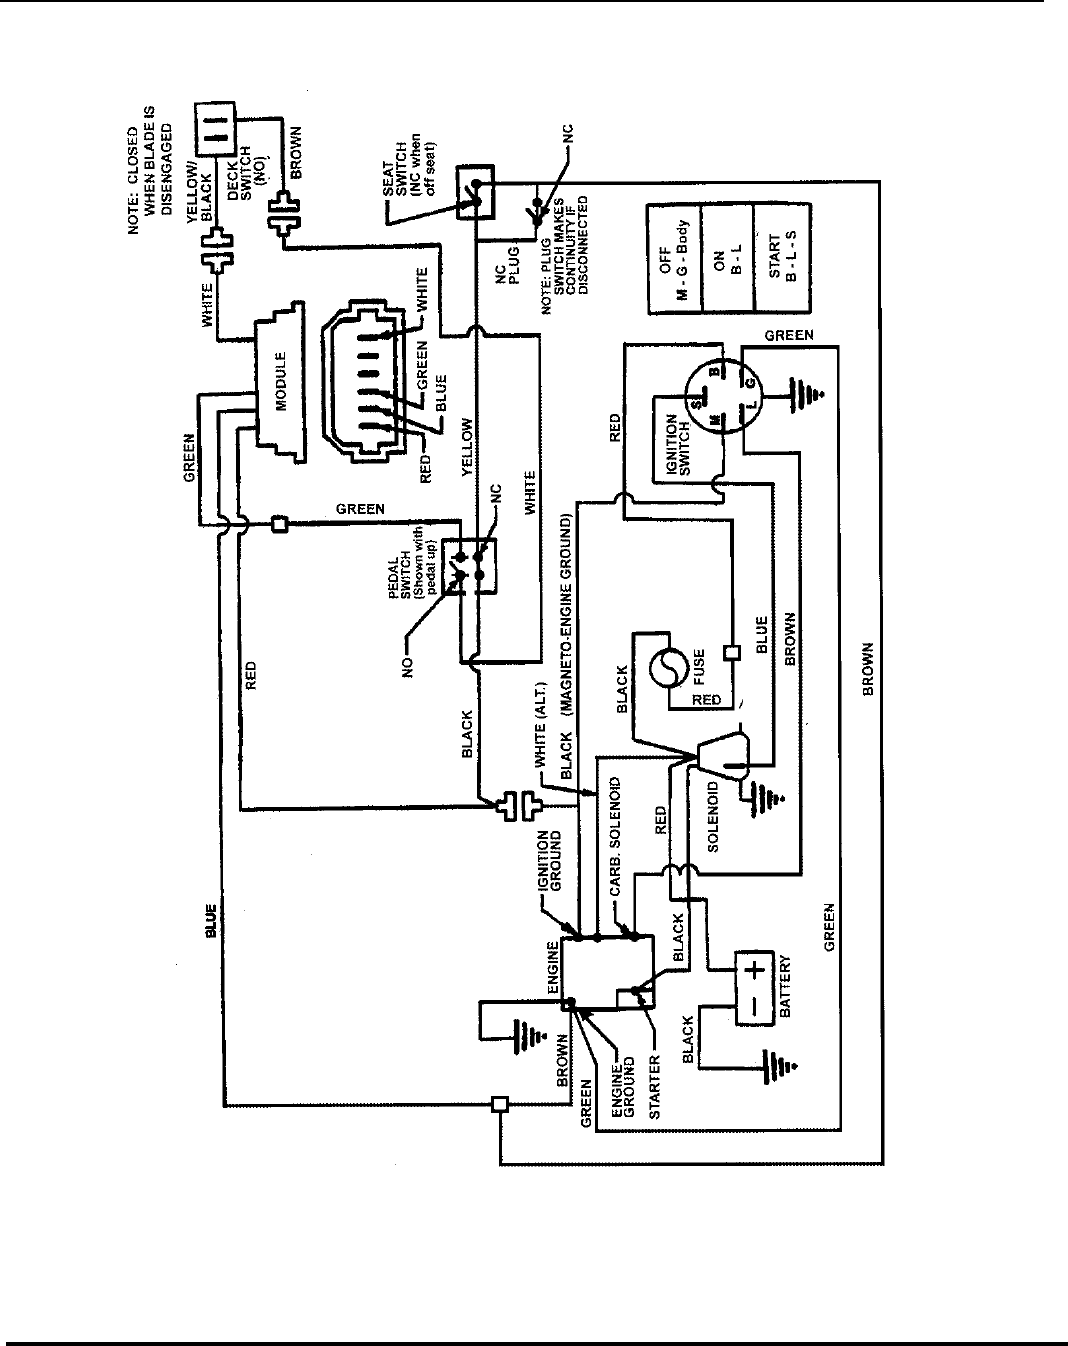 Wiring schematic for 18 20hp briggs